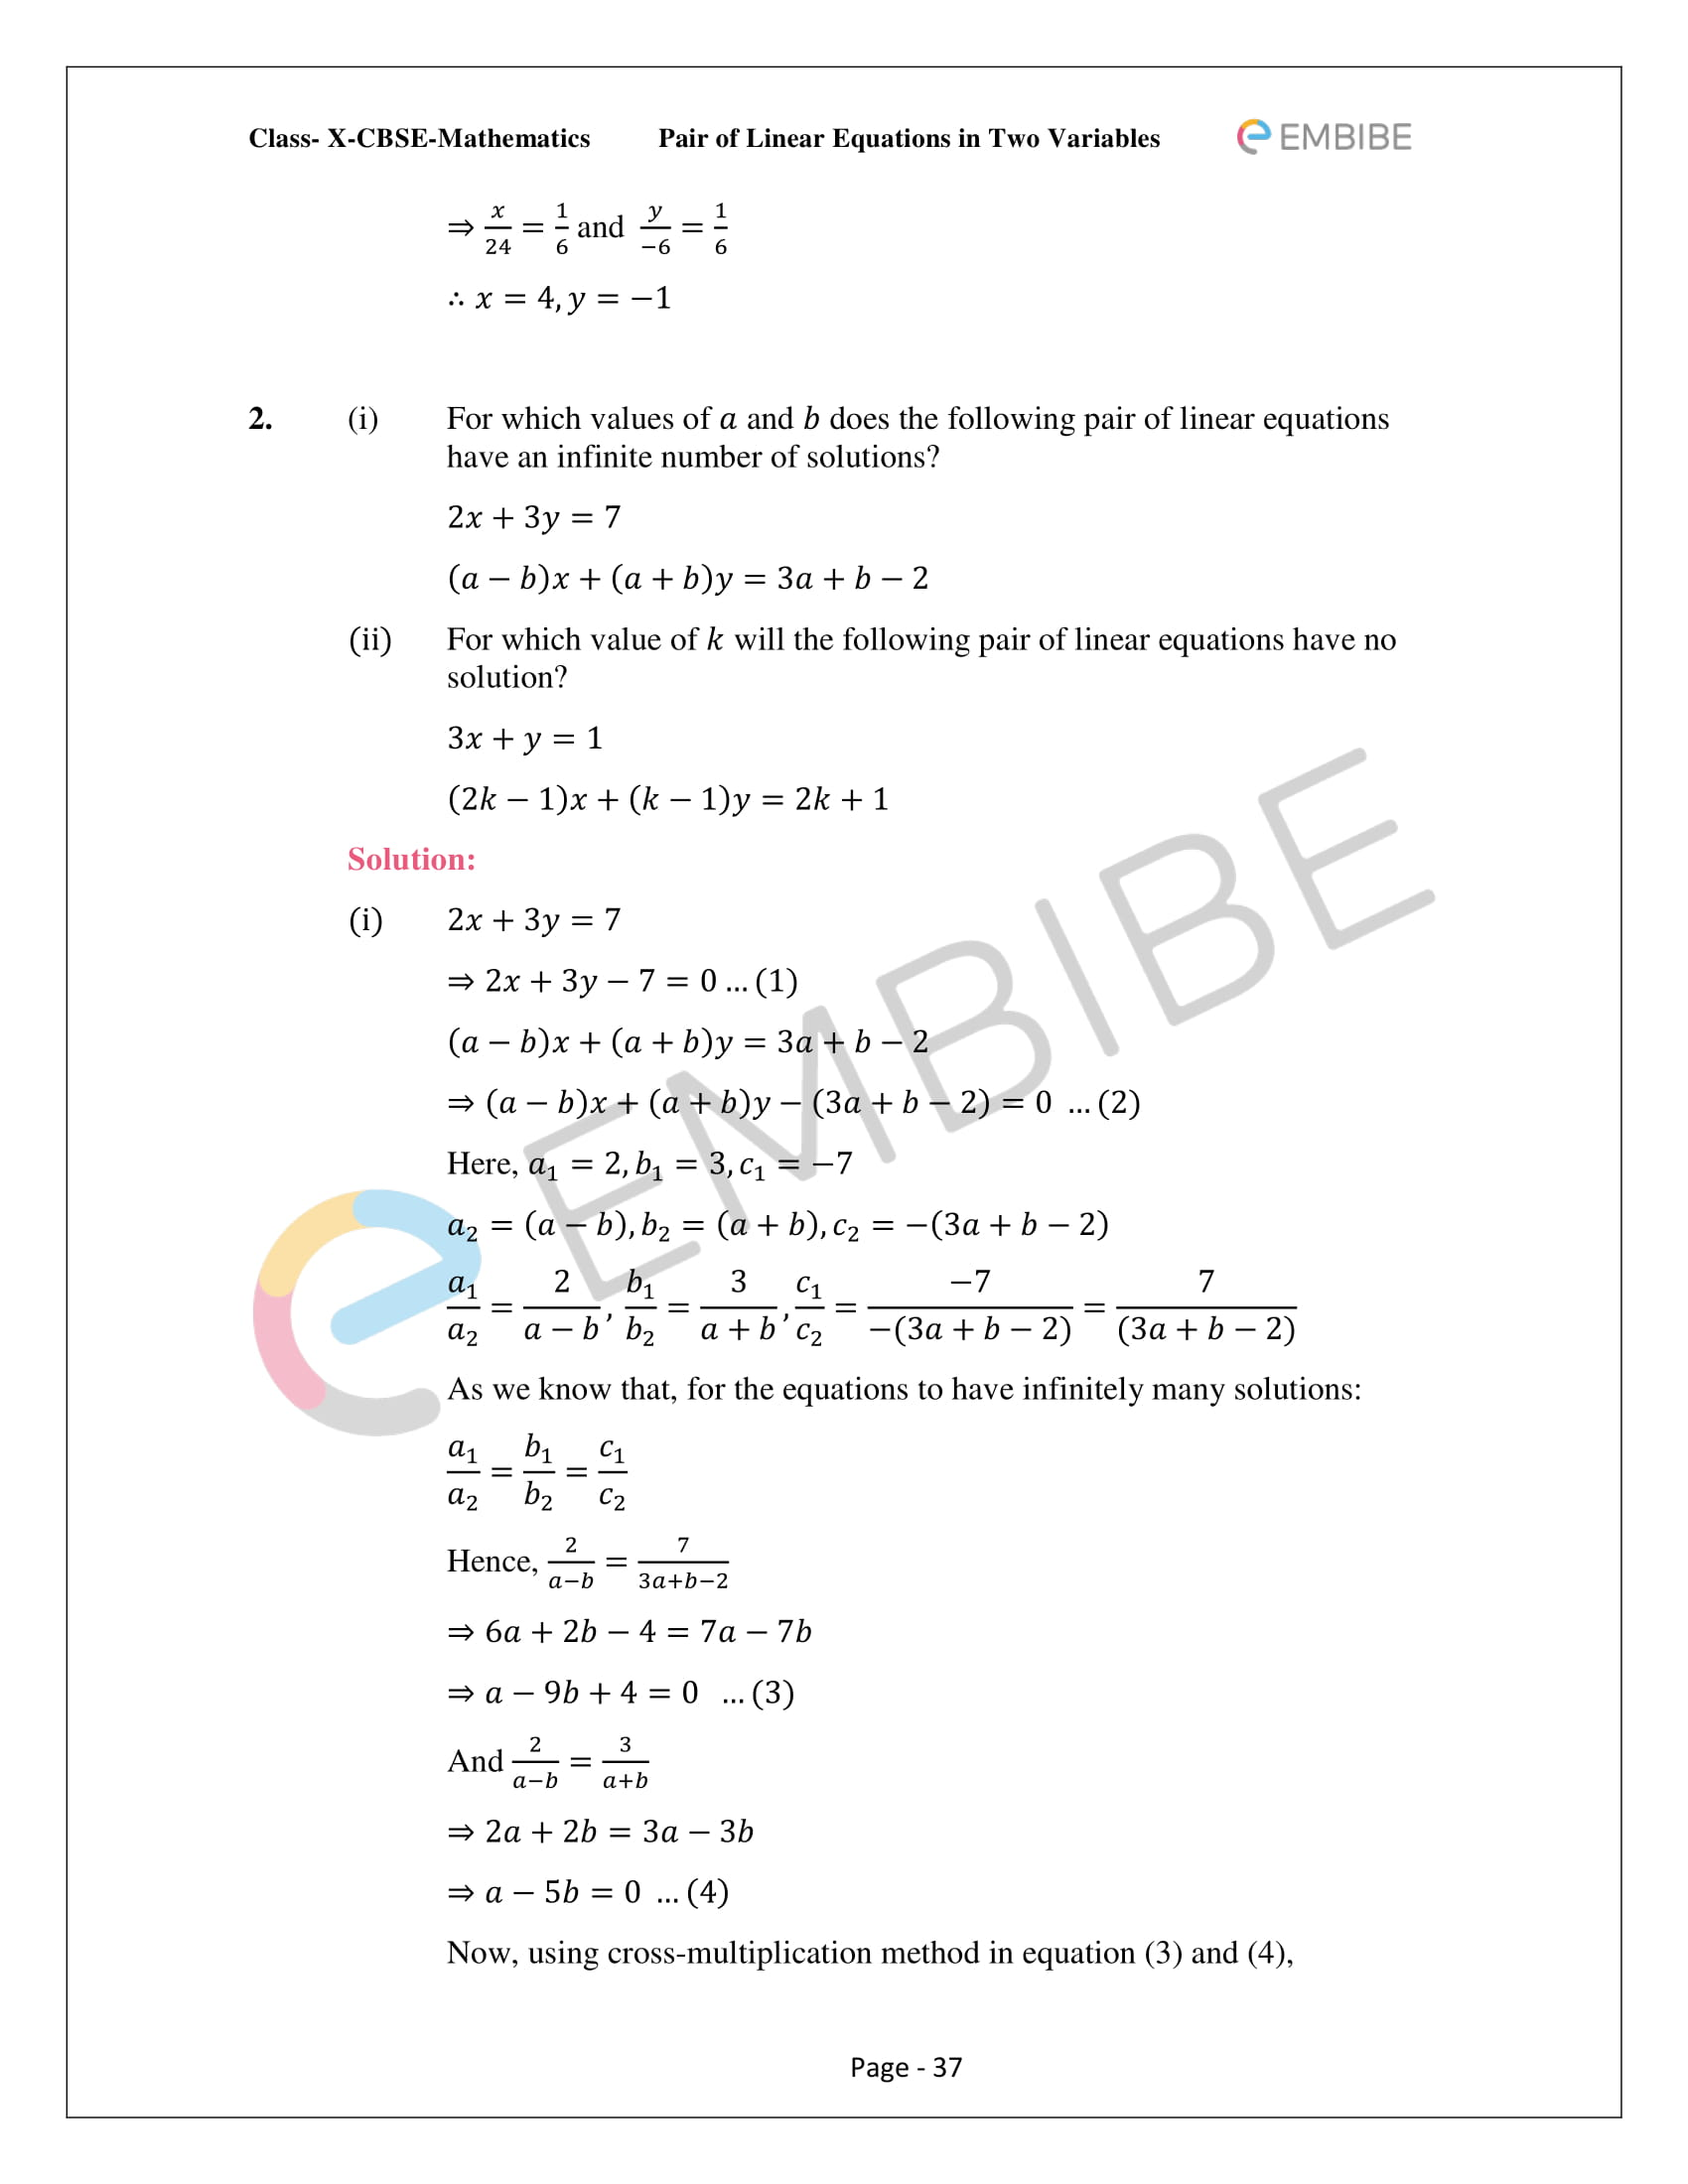 CBSE NCERT Solutions For Class 10 Maths Chapter 3 - Pair of Linear Equations In Two Variables - 37